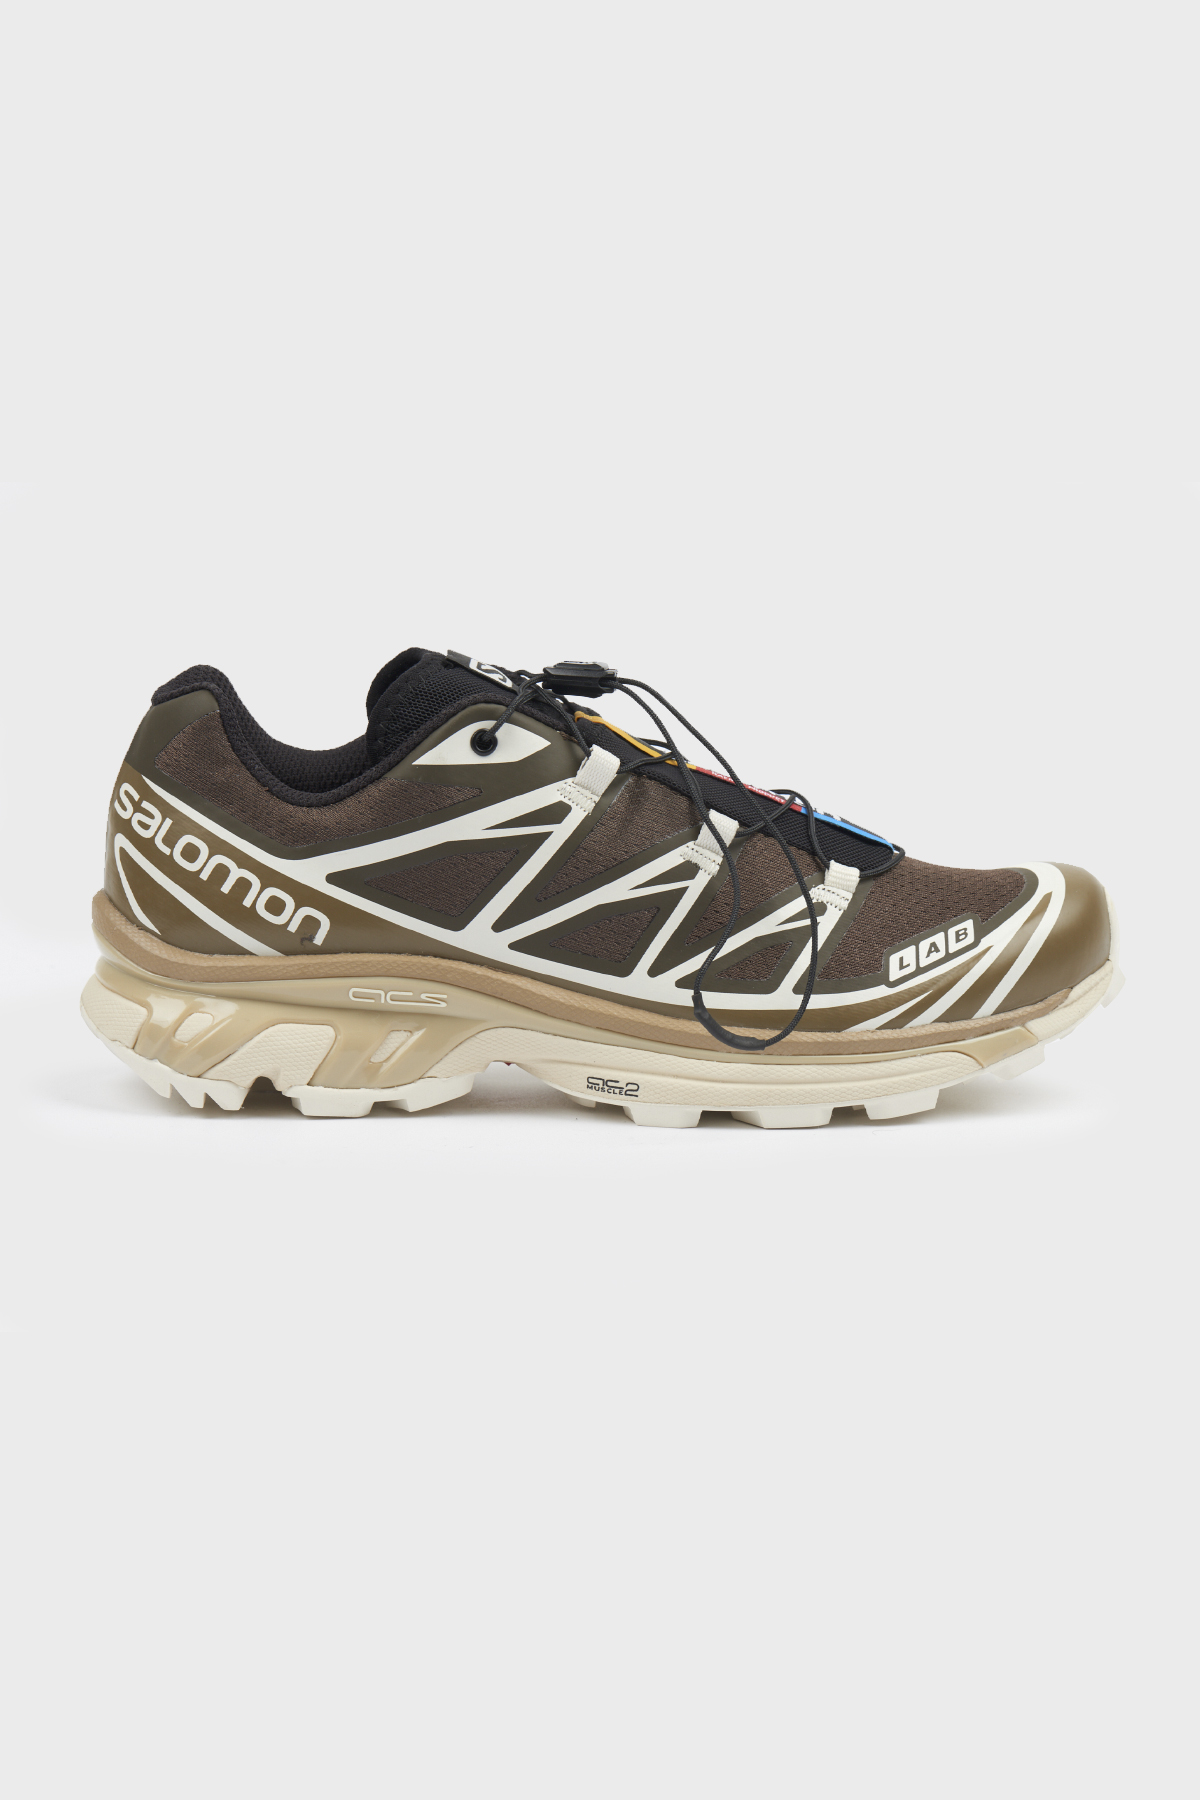 Salomon W - S/LAB XT-6 softground ADV LTD - Wren Kangaroo